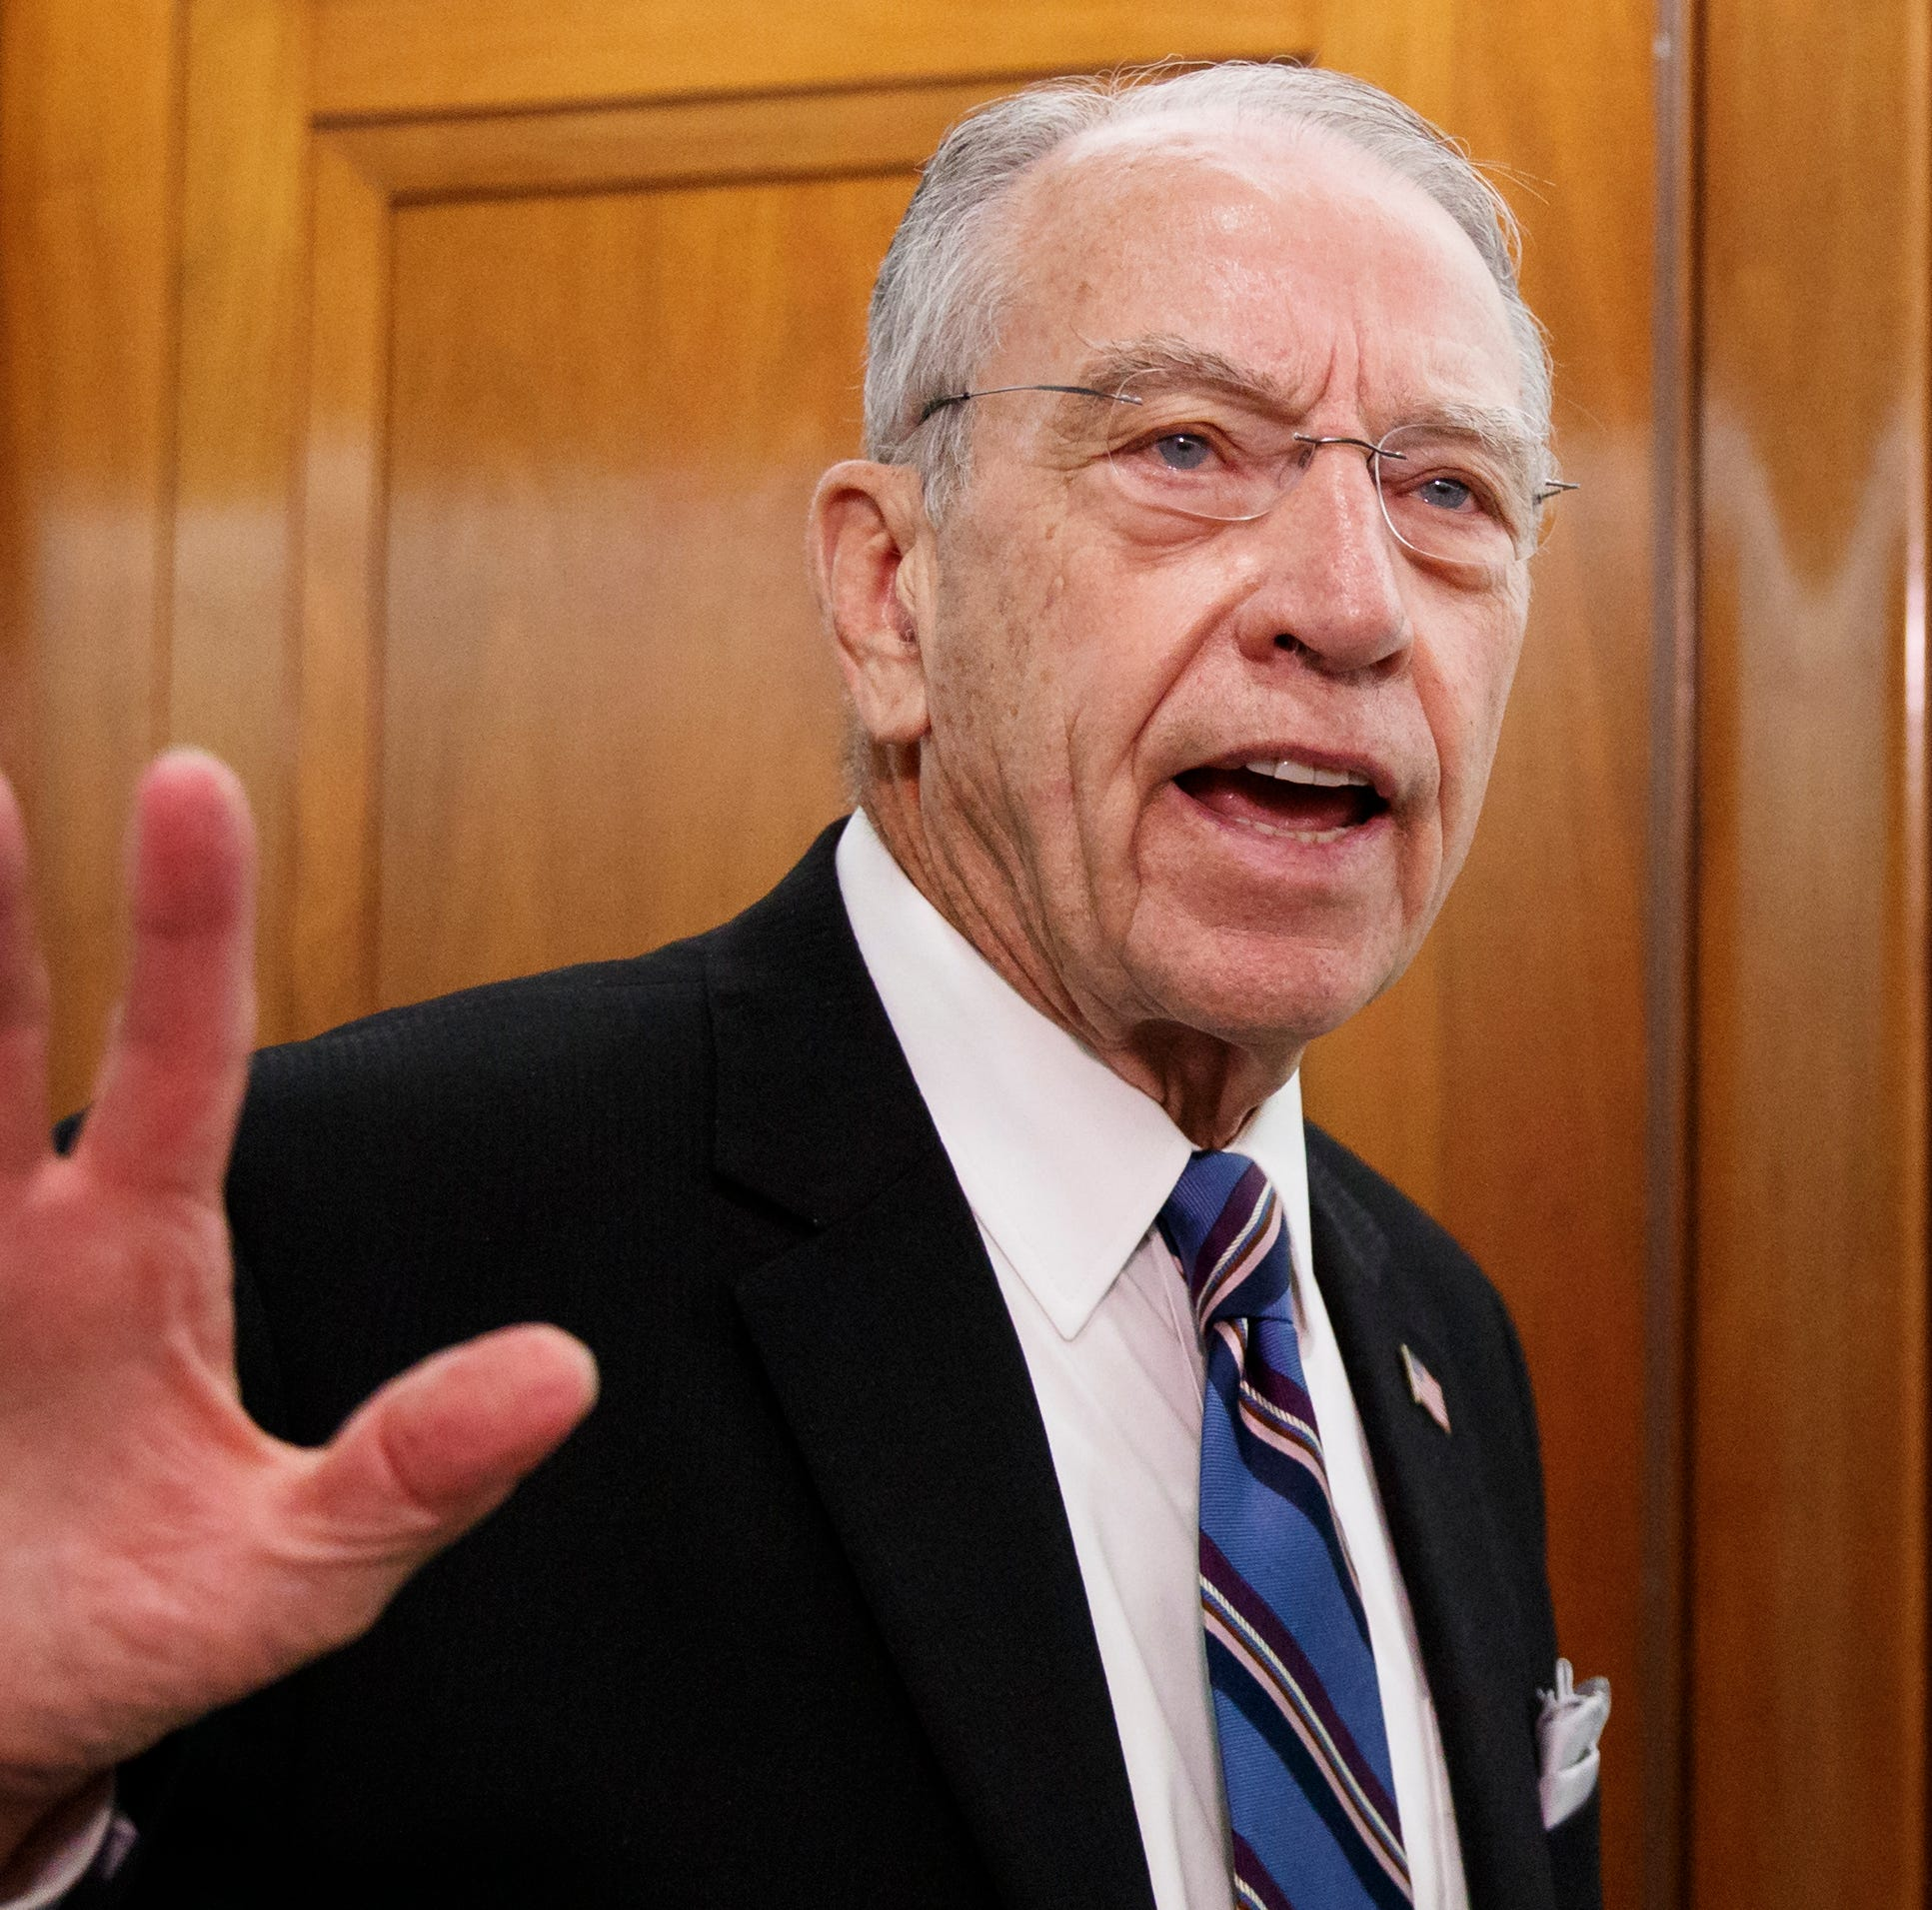 Chuck Grassley distances himself from Steve King, but doesn't repudiate him